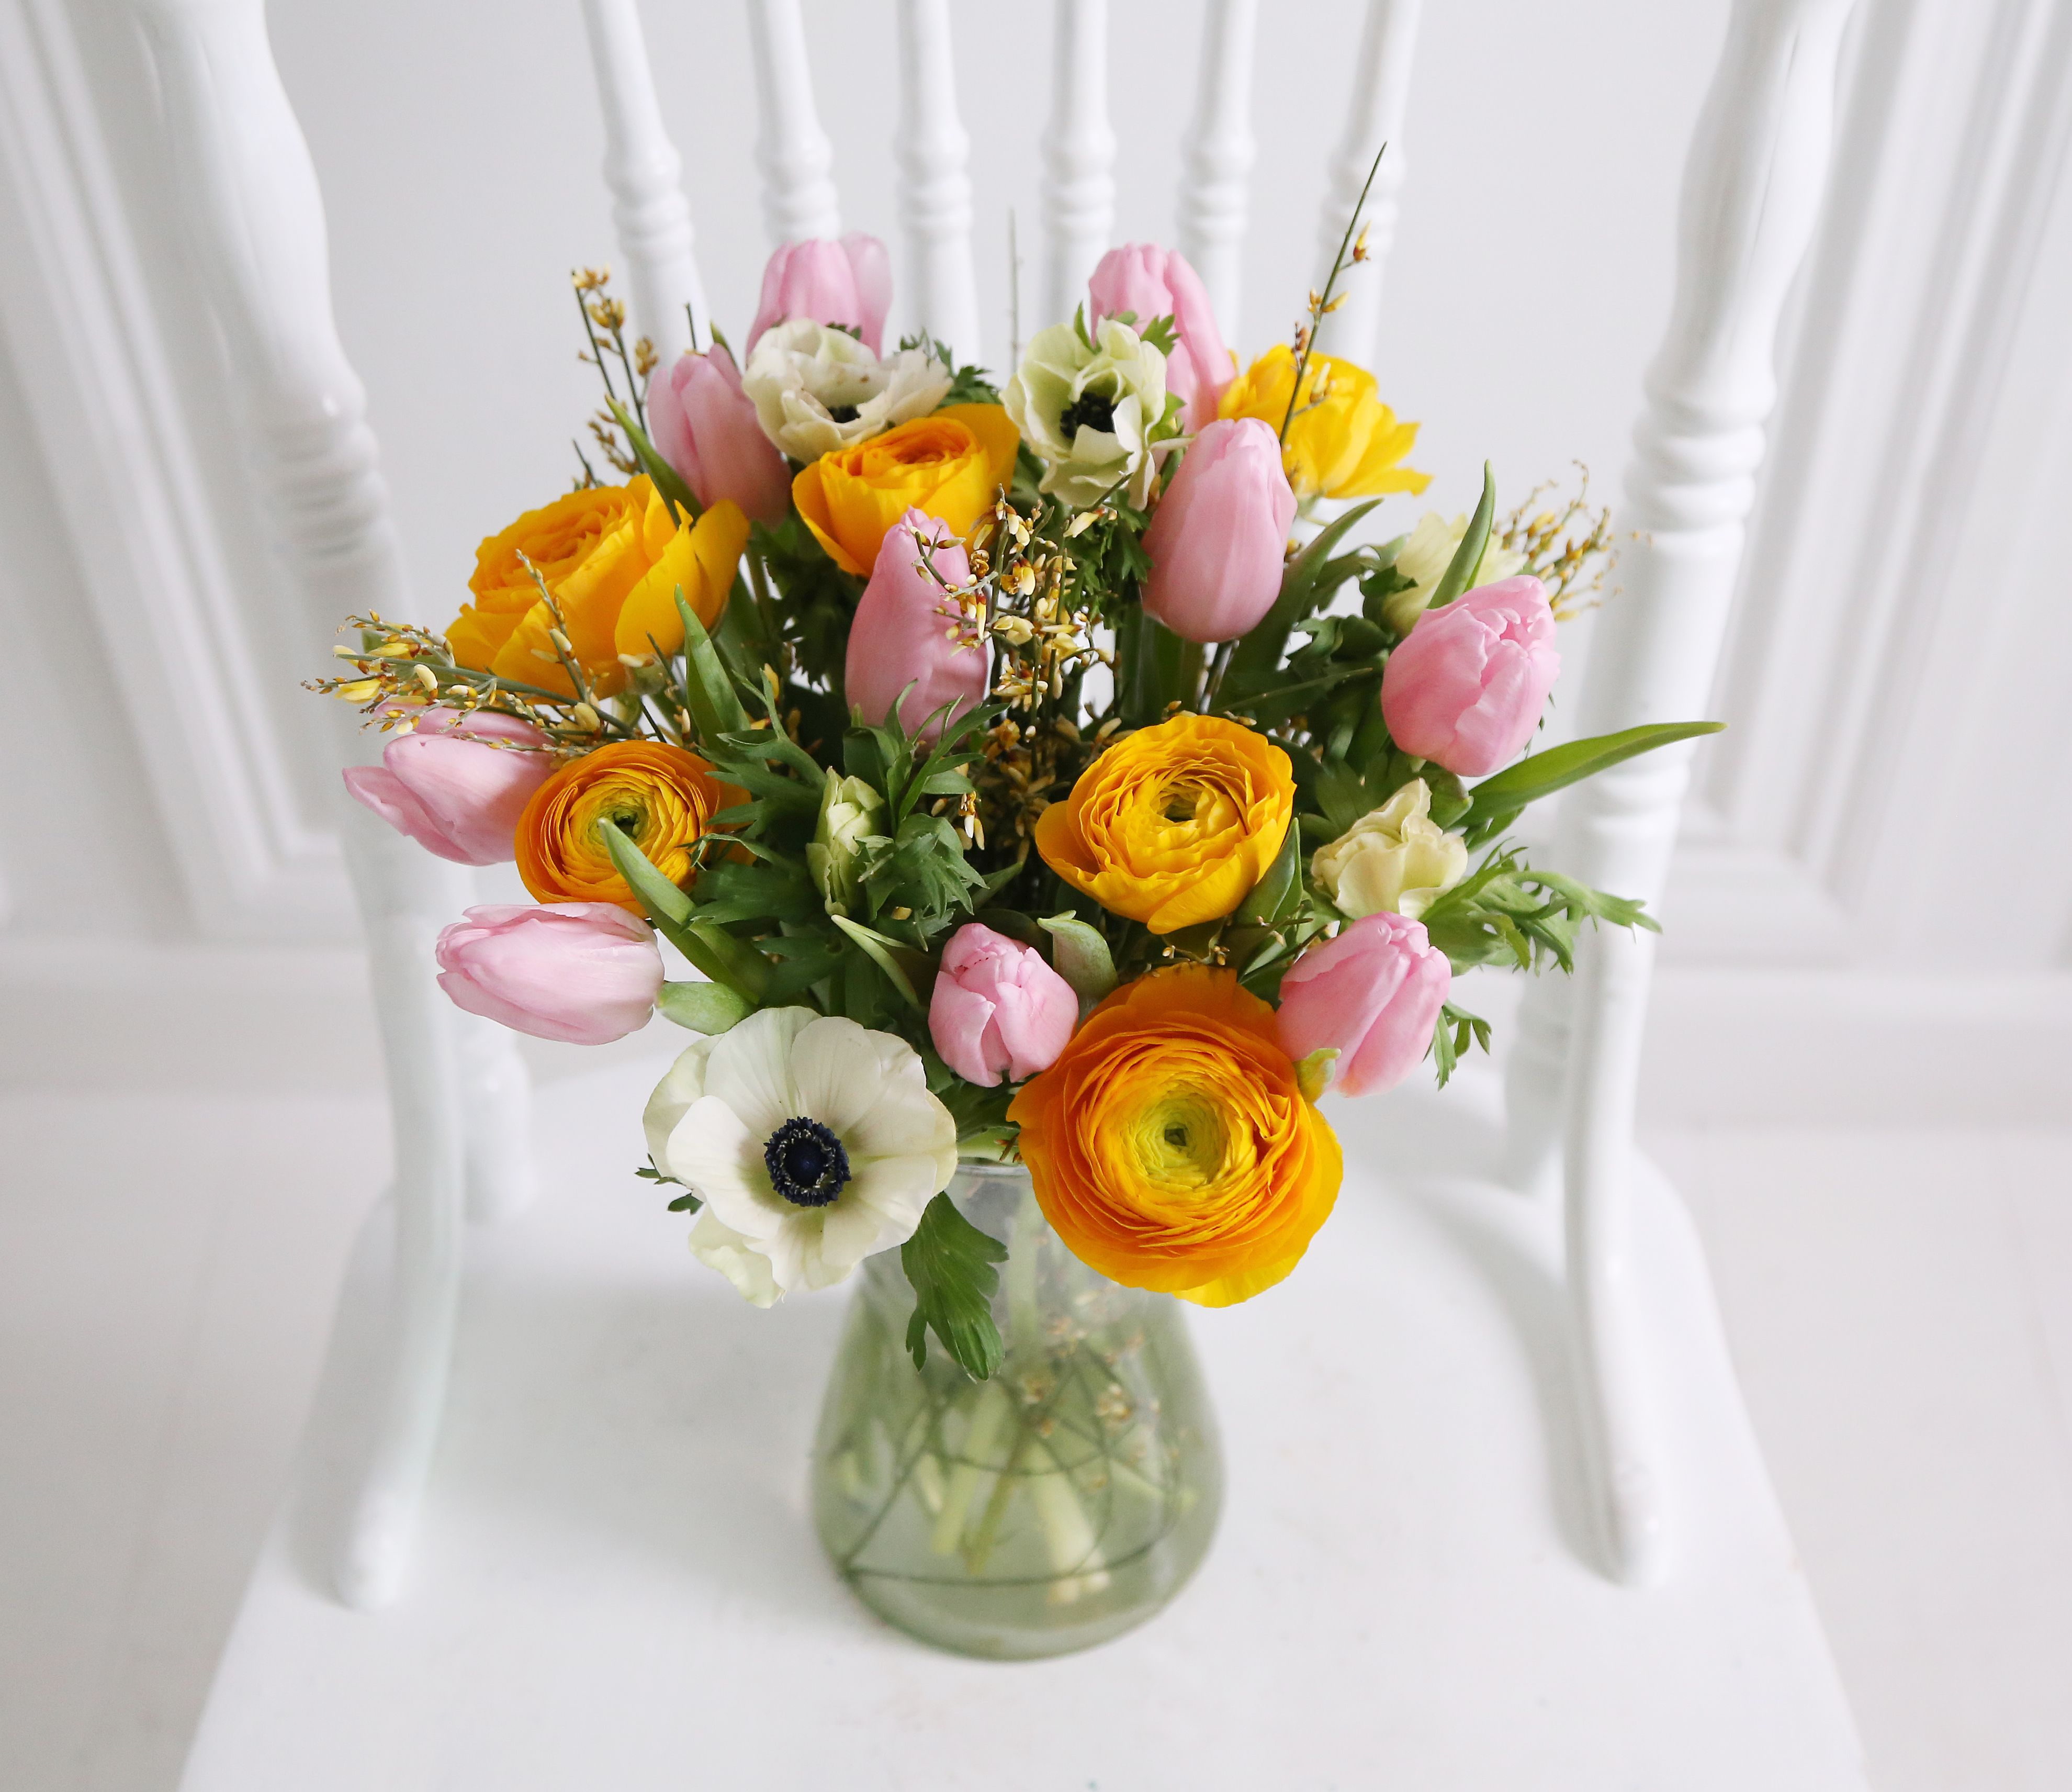 Spring cheer bouquet 6 yellow ranunculus 10 light pink tulip call now on 0800 0350 flower delivery london uk from leading online flower shop arena flowers izmirmasajfo Gallery